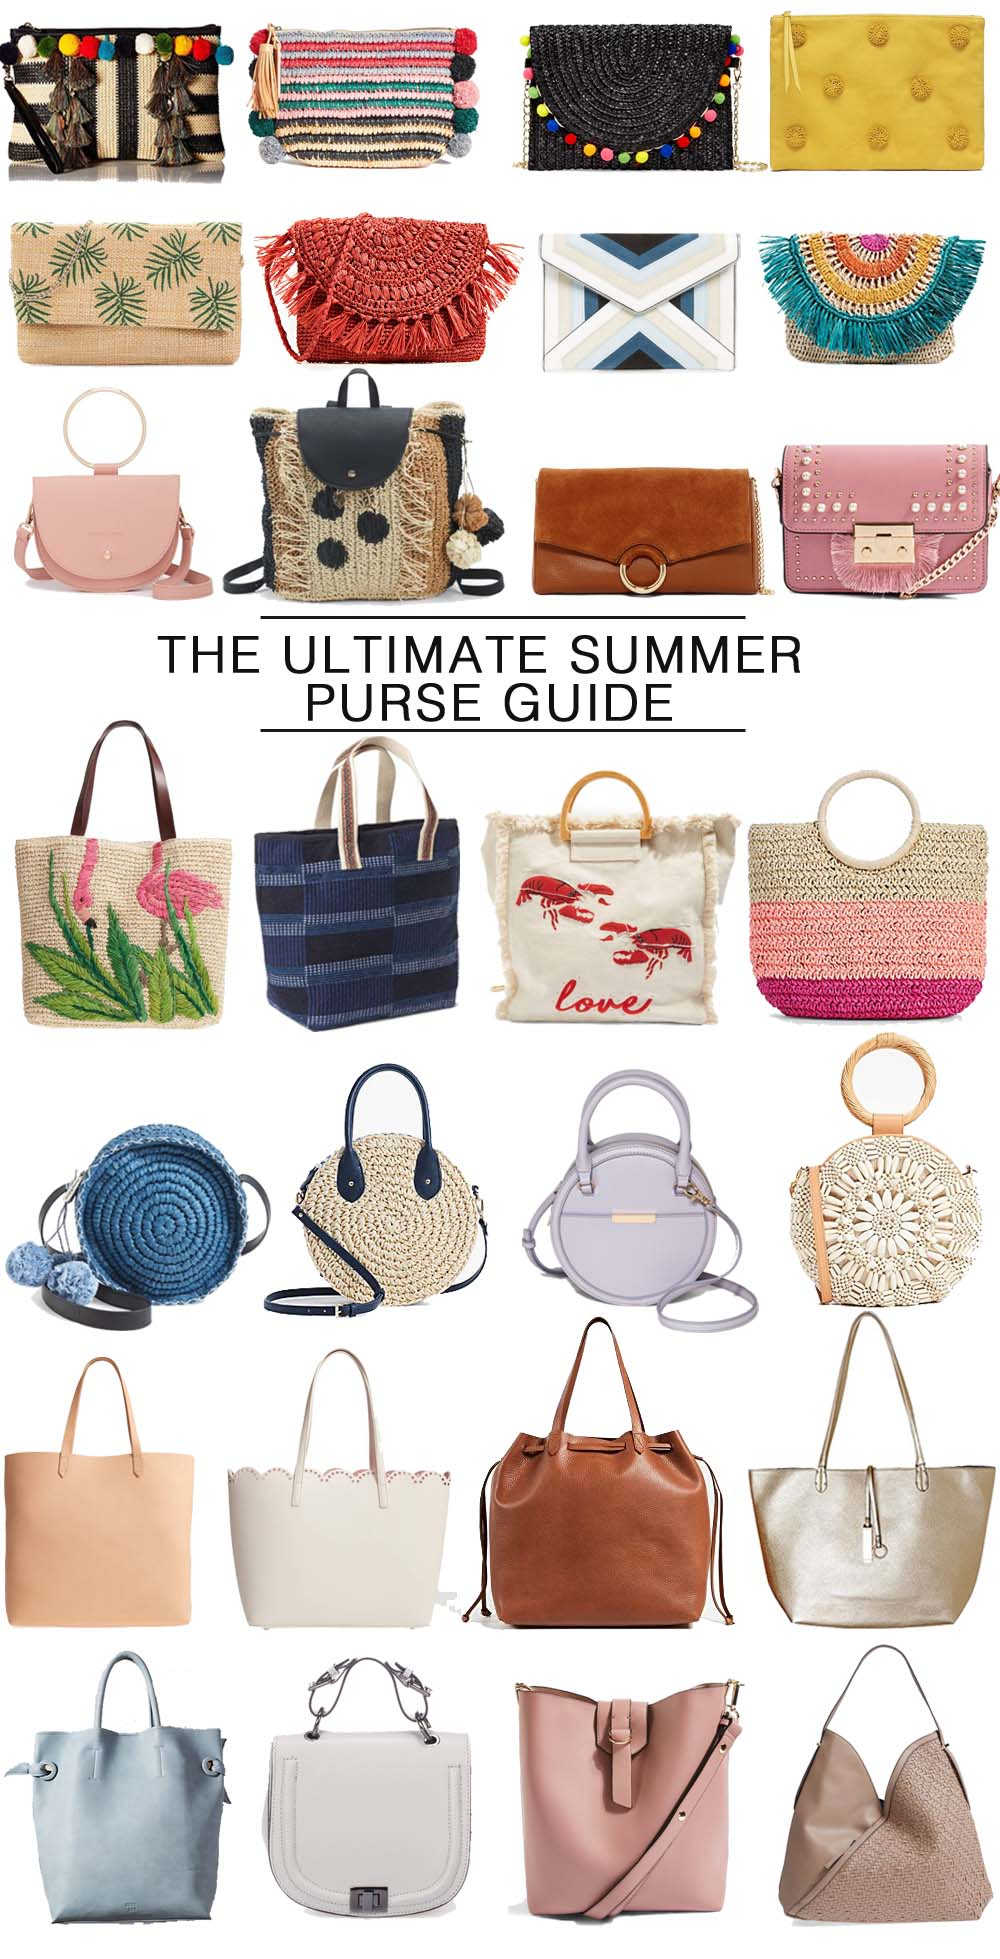 The ultimate guide to summer purses: clutches, cross body, casual fun totes, round bags, leather totes & day bags... it's all here and budget friendly! // the modern savvy, a life & style blog  - The Best Summer Handbags by popular Florida blogger, The Modern Savvy